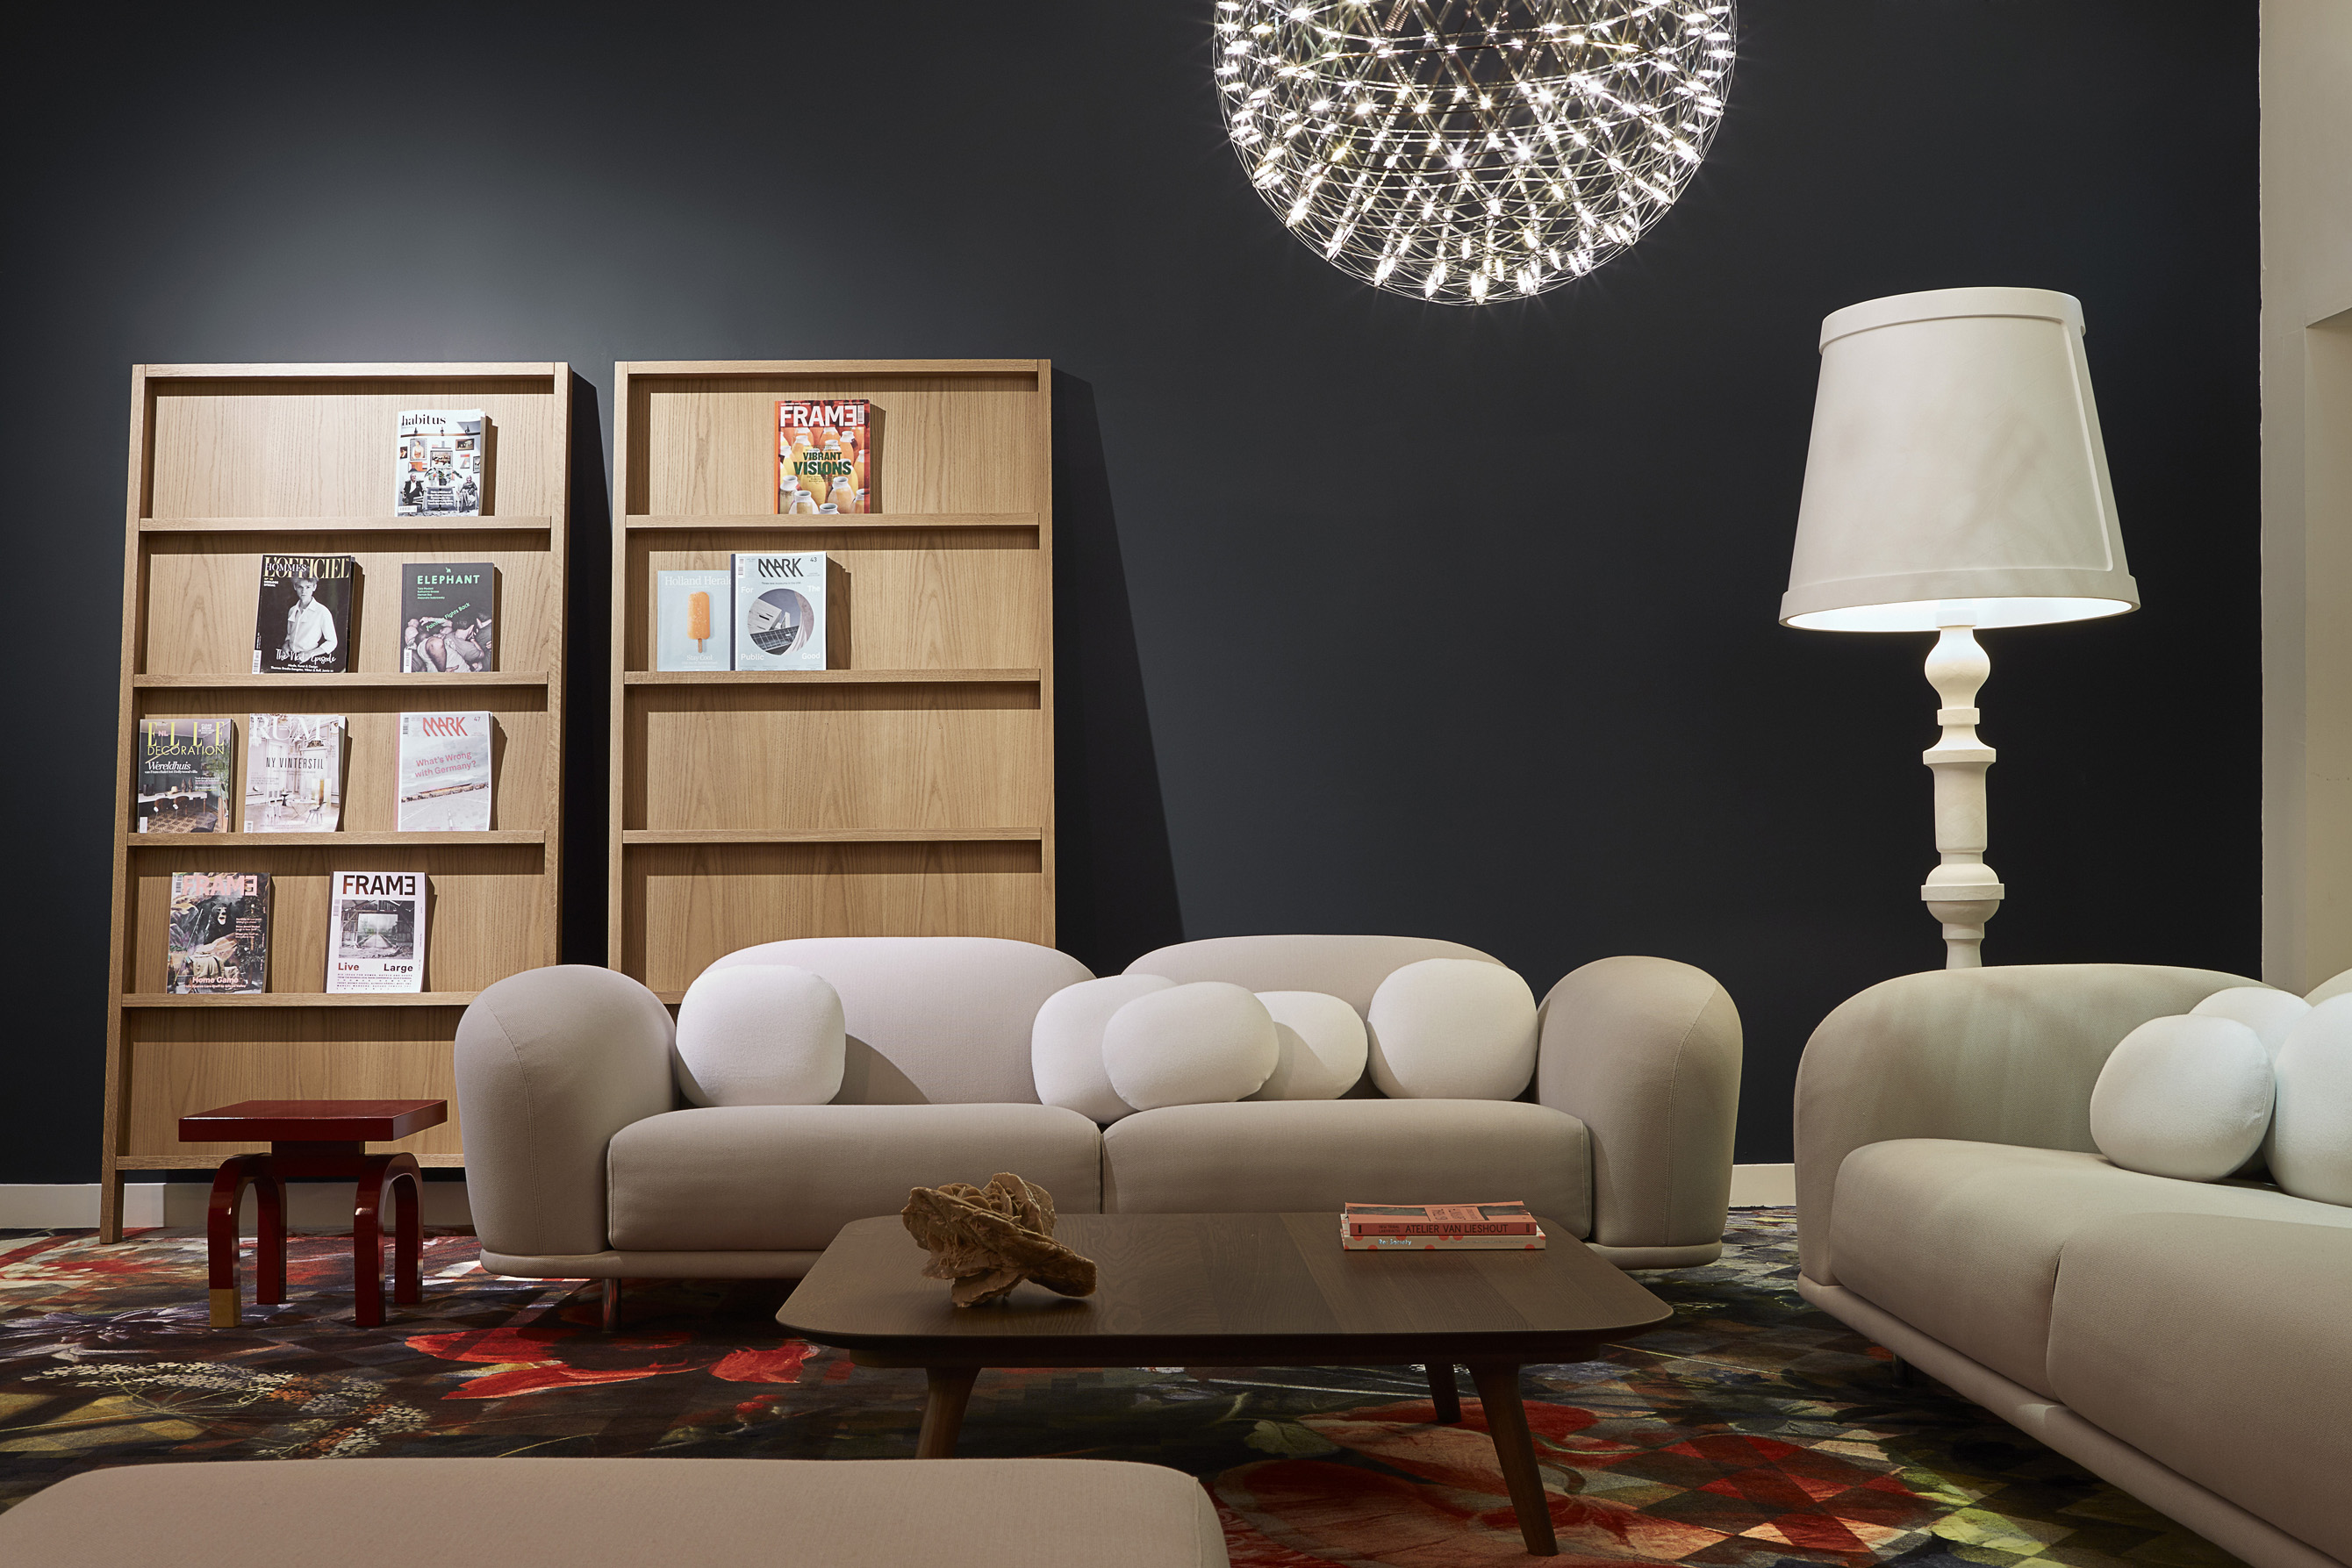 moooi cloud sofa buy from campbell watson uk. Black Bedroom Furniture Sets. Home Design Ideas